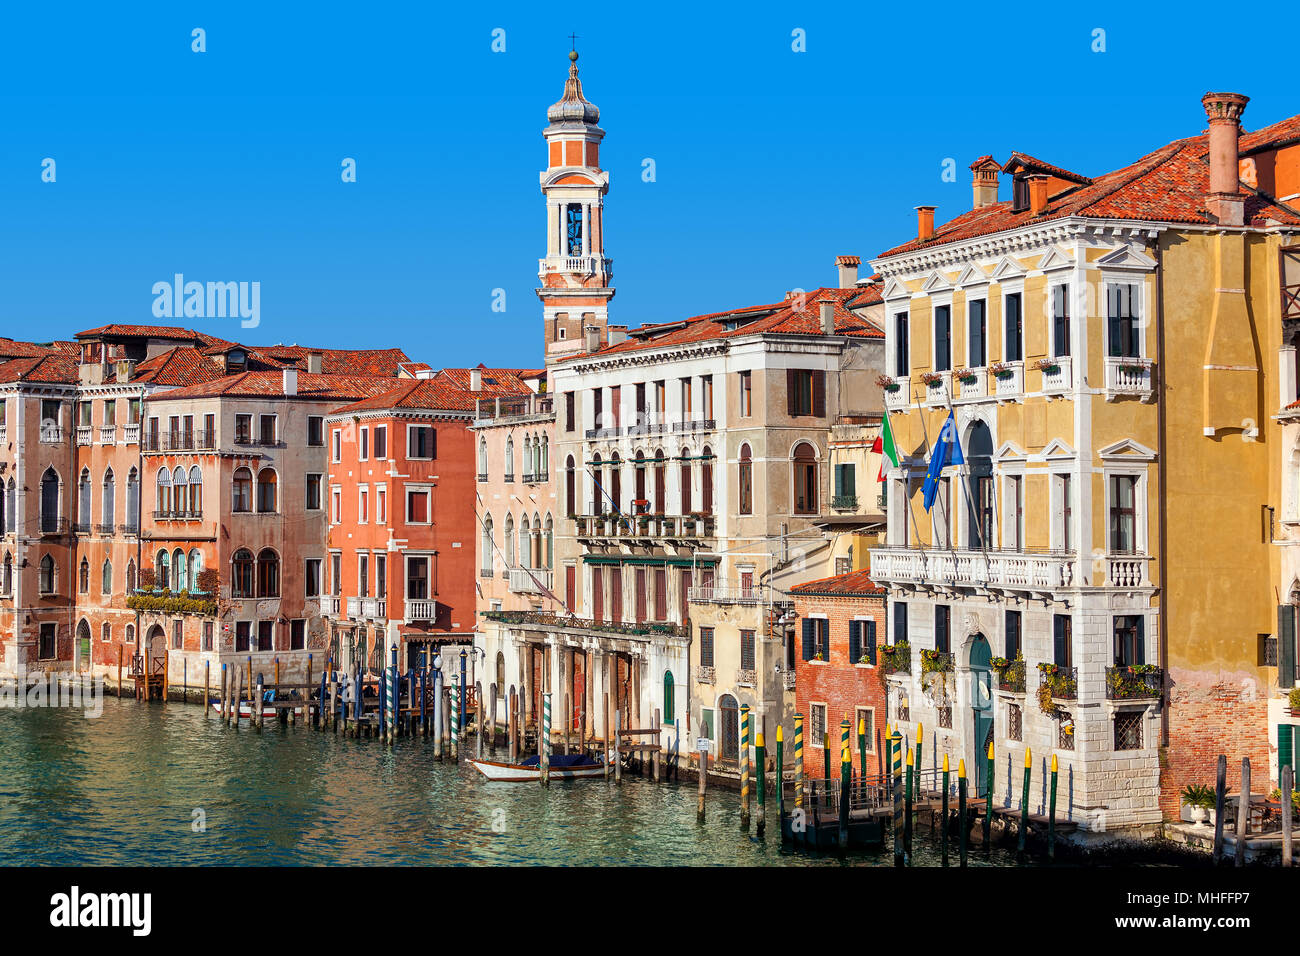 View of colorful buildings along Grand canal under blue sky in Venice, Italy. - Stock Image